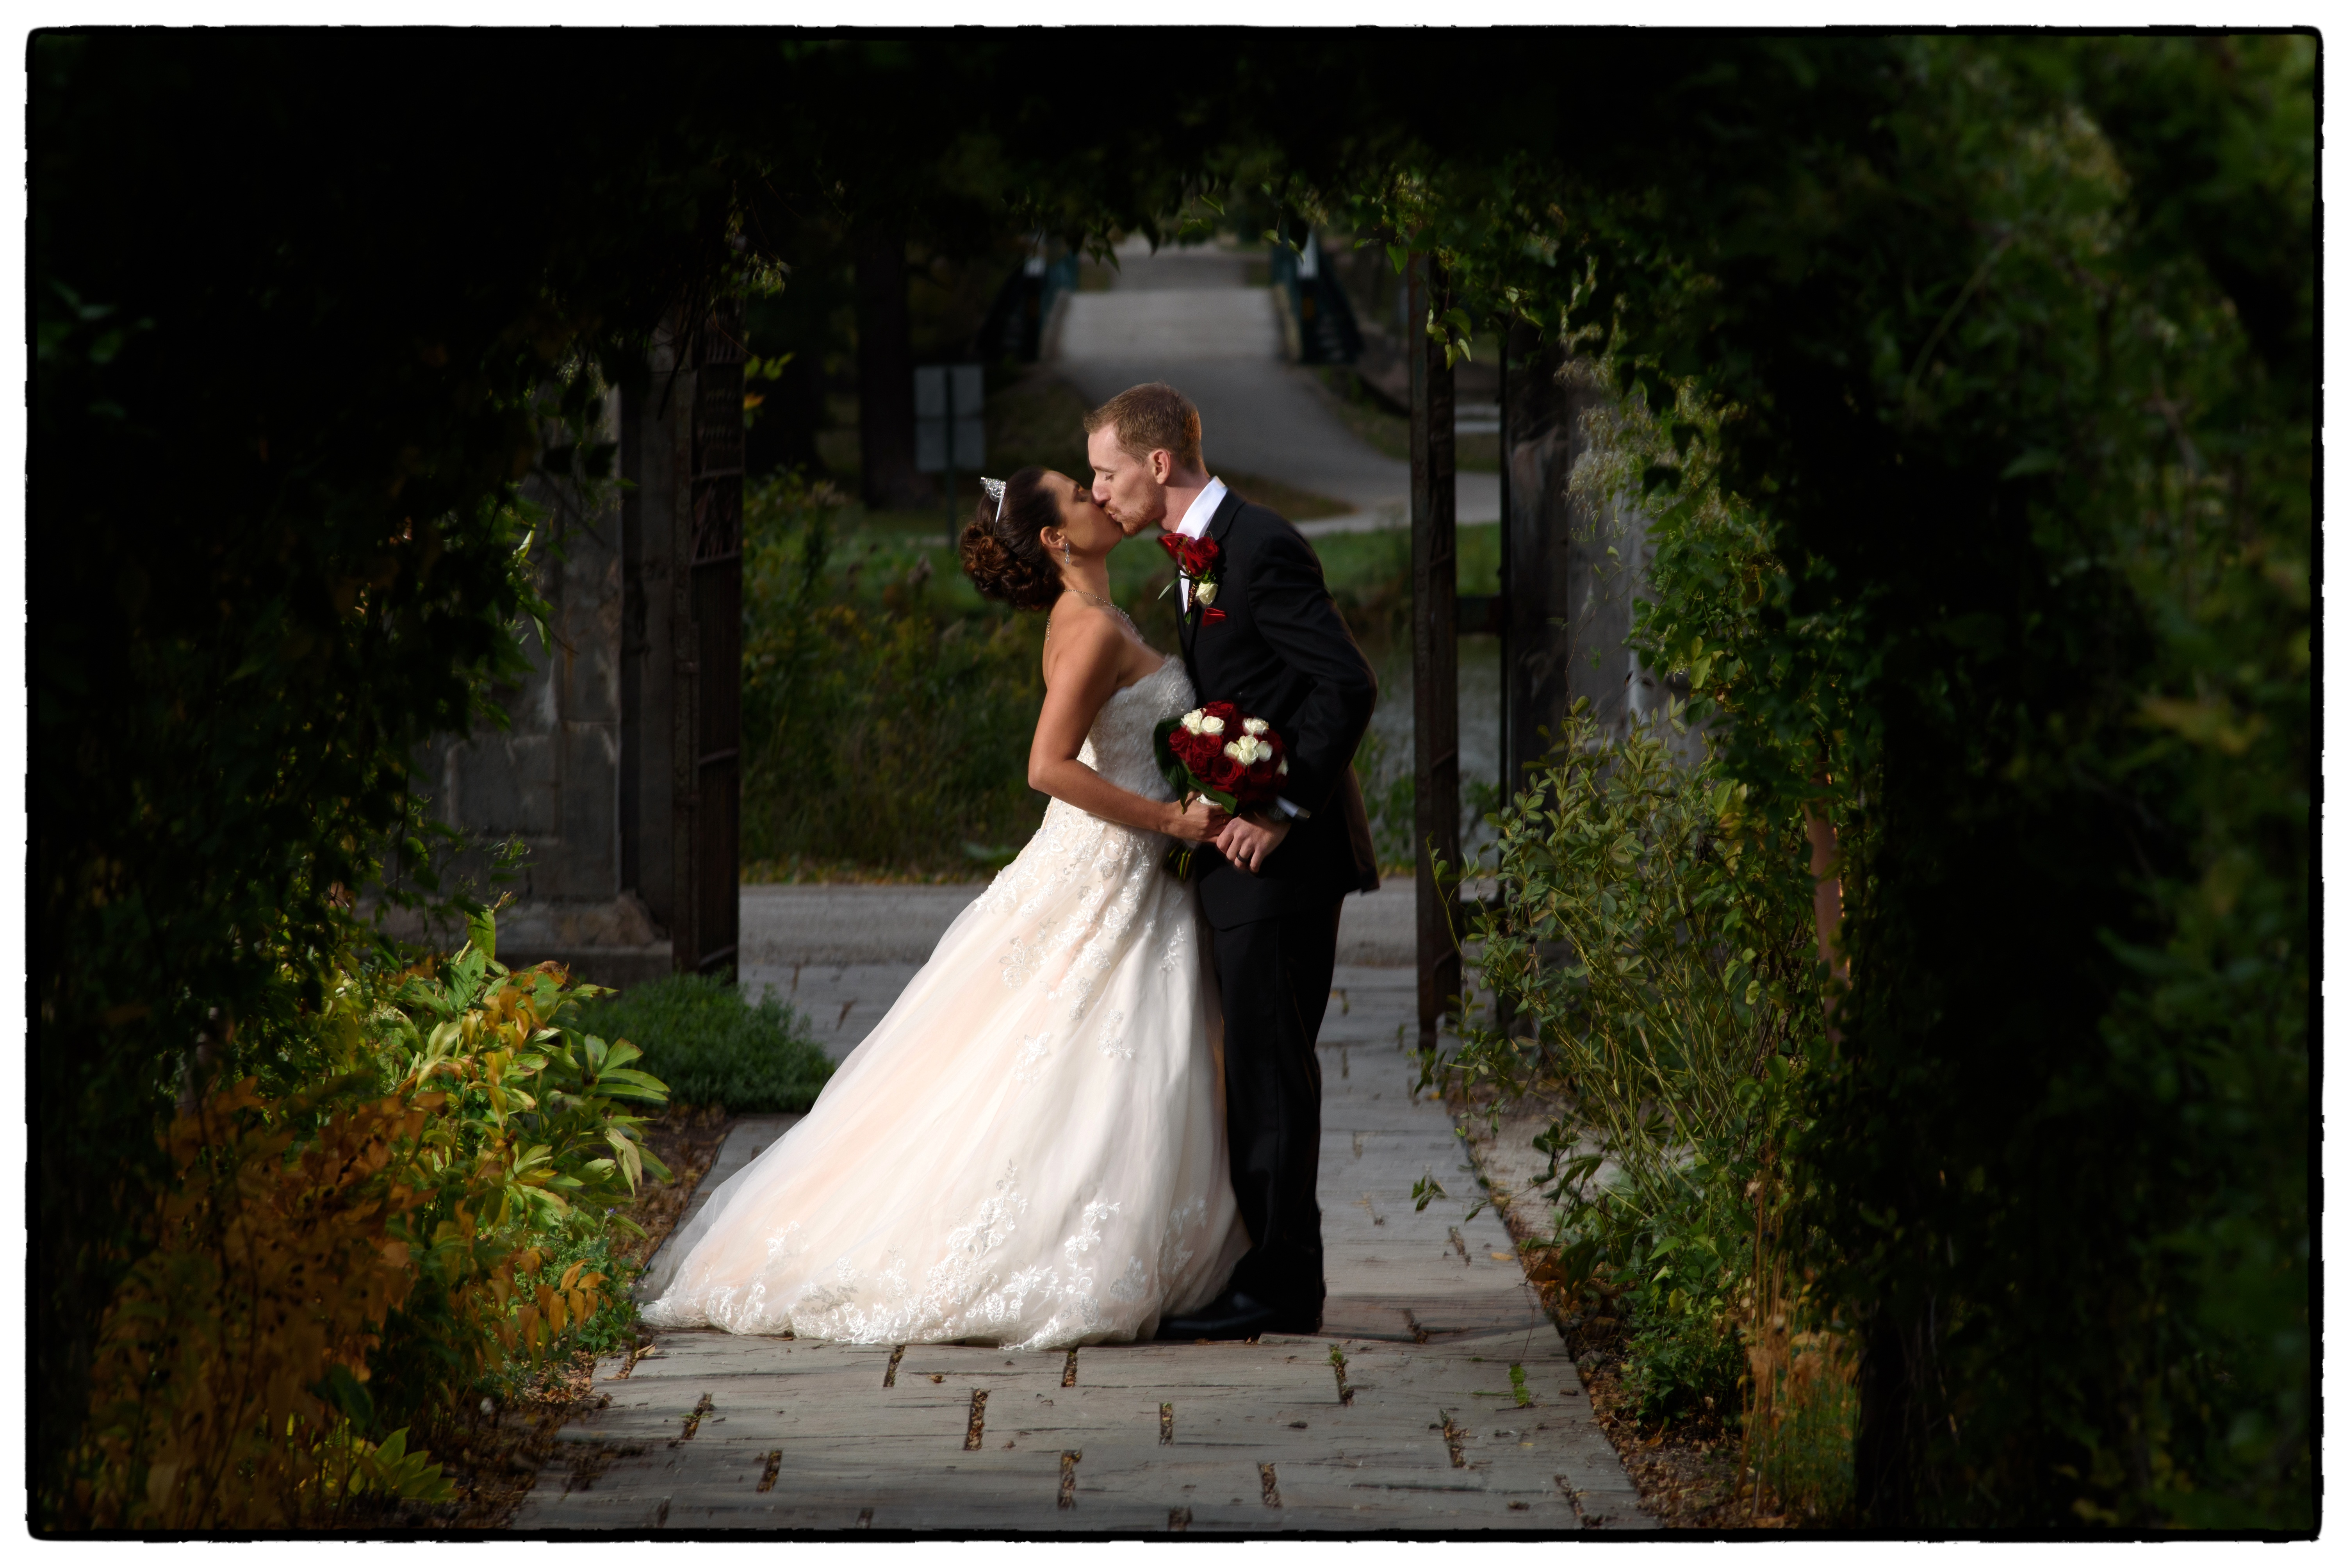 Rockford IL Wedding Photography by Jay Bryant